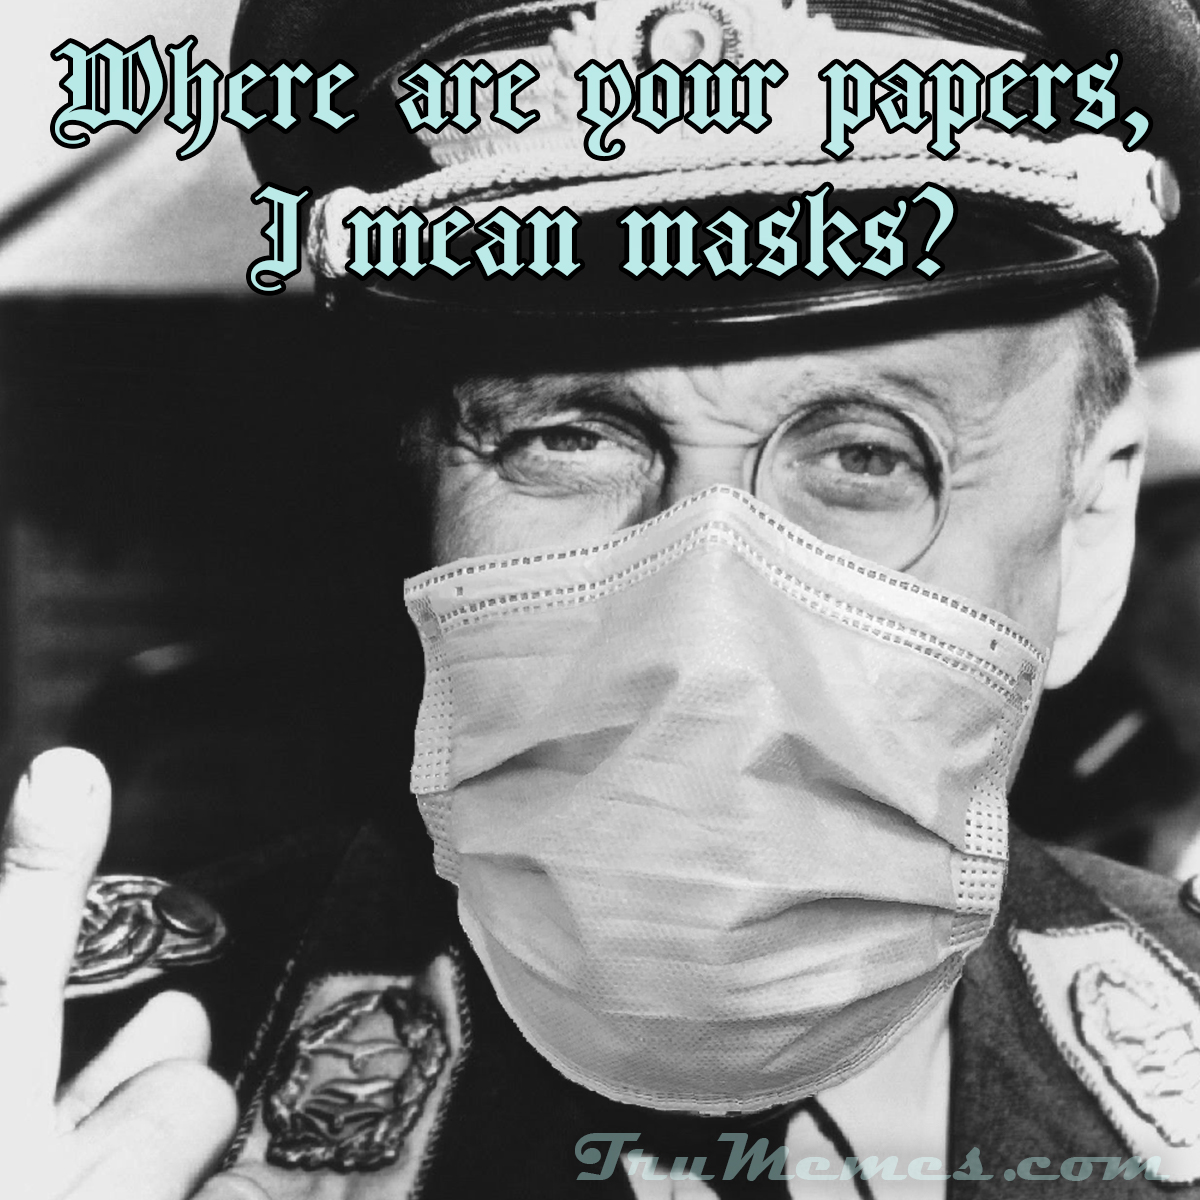 Where are your papers, I mean masks!